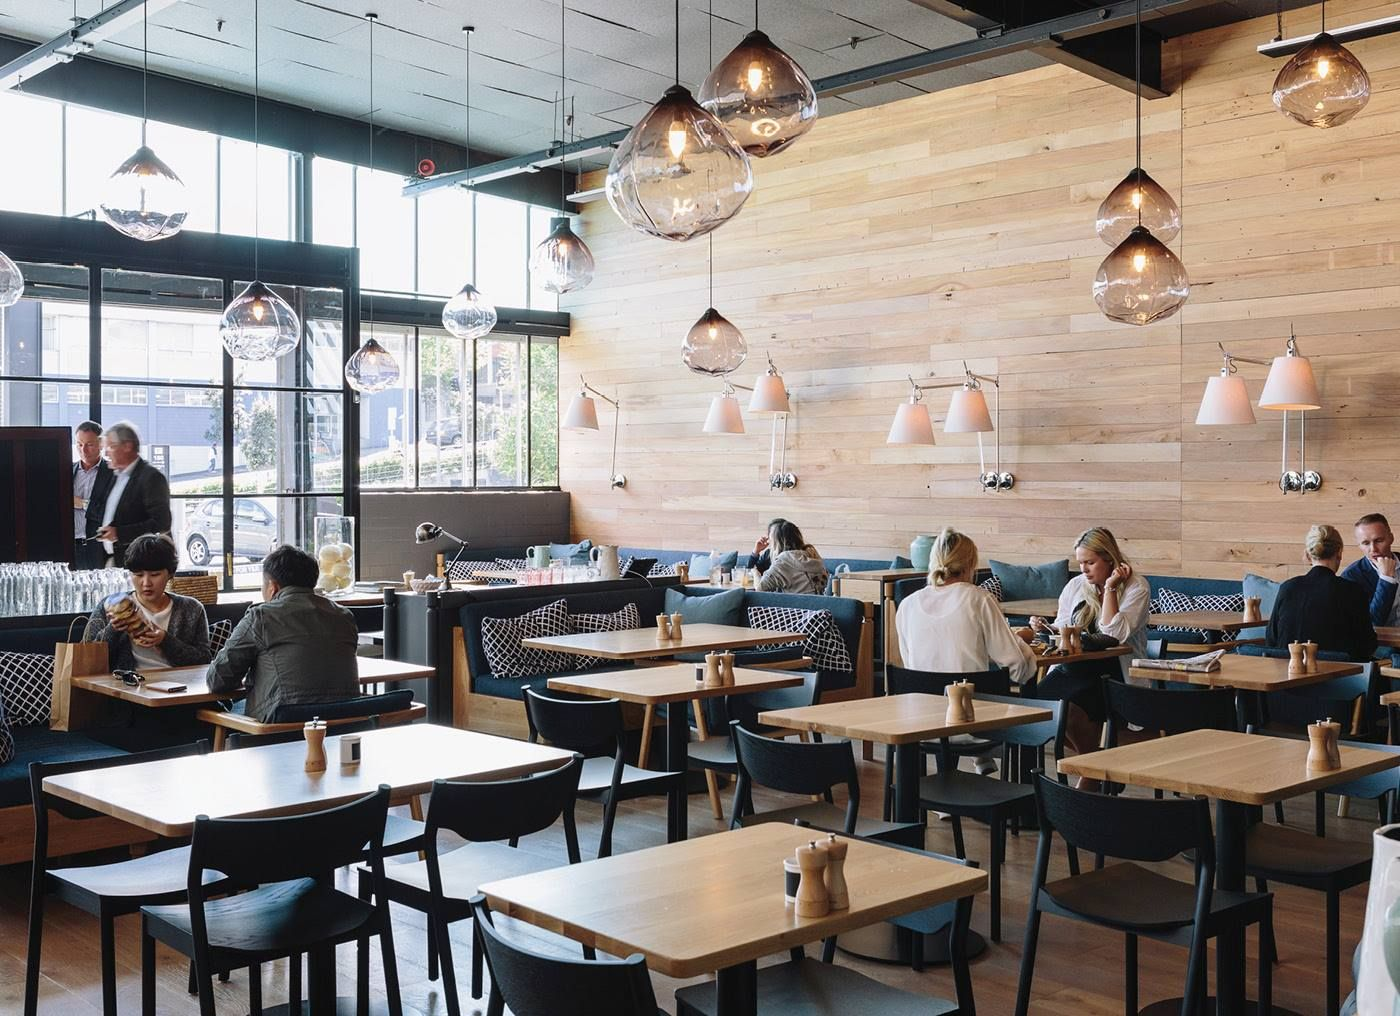 Pin By Jacqueline Wu On Decoration Cafe Bar Design Cafe Bar Interior Eatery